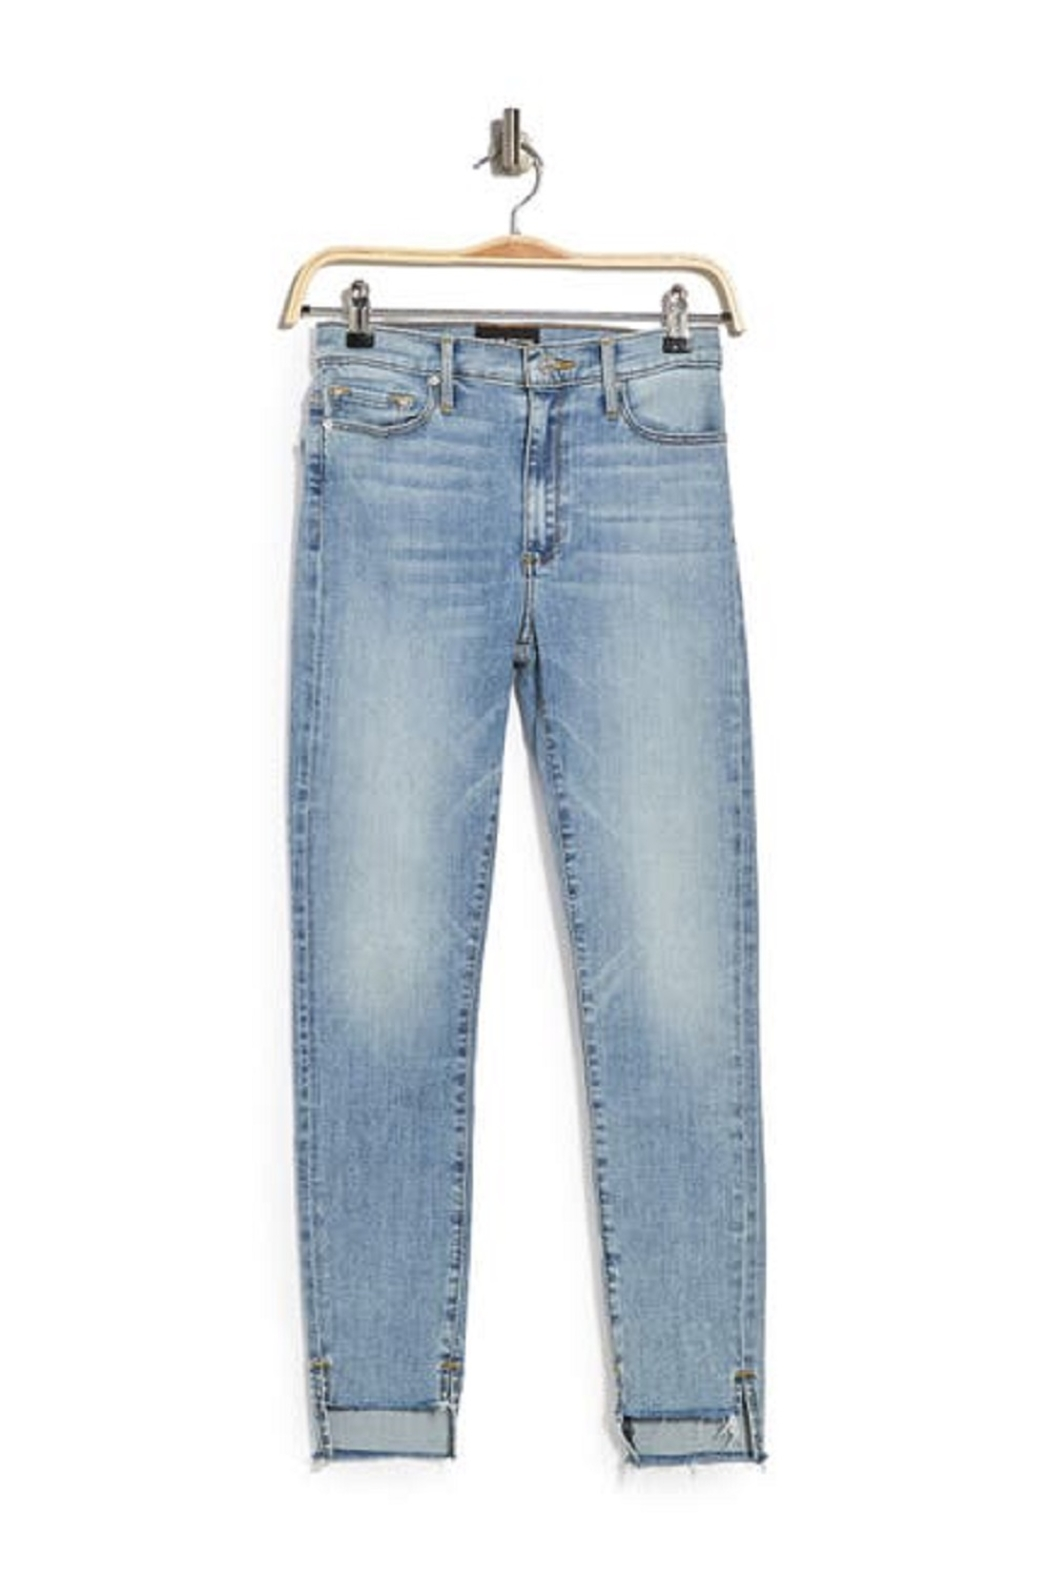 Black Orchid Denim Light Wash Step Hem Jeans - Side Cropped Image